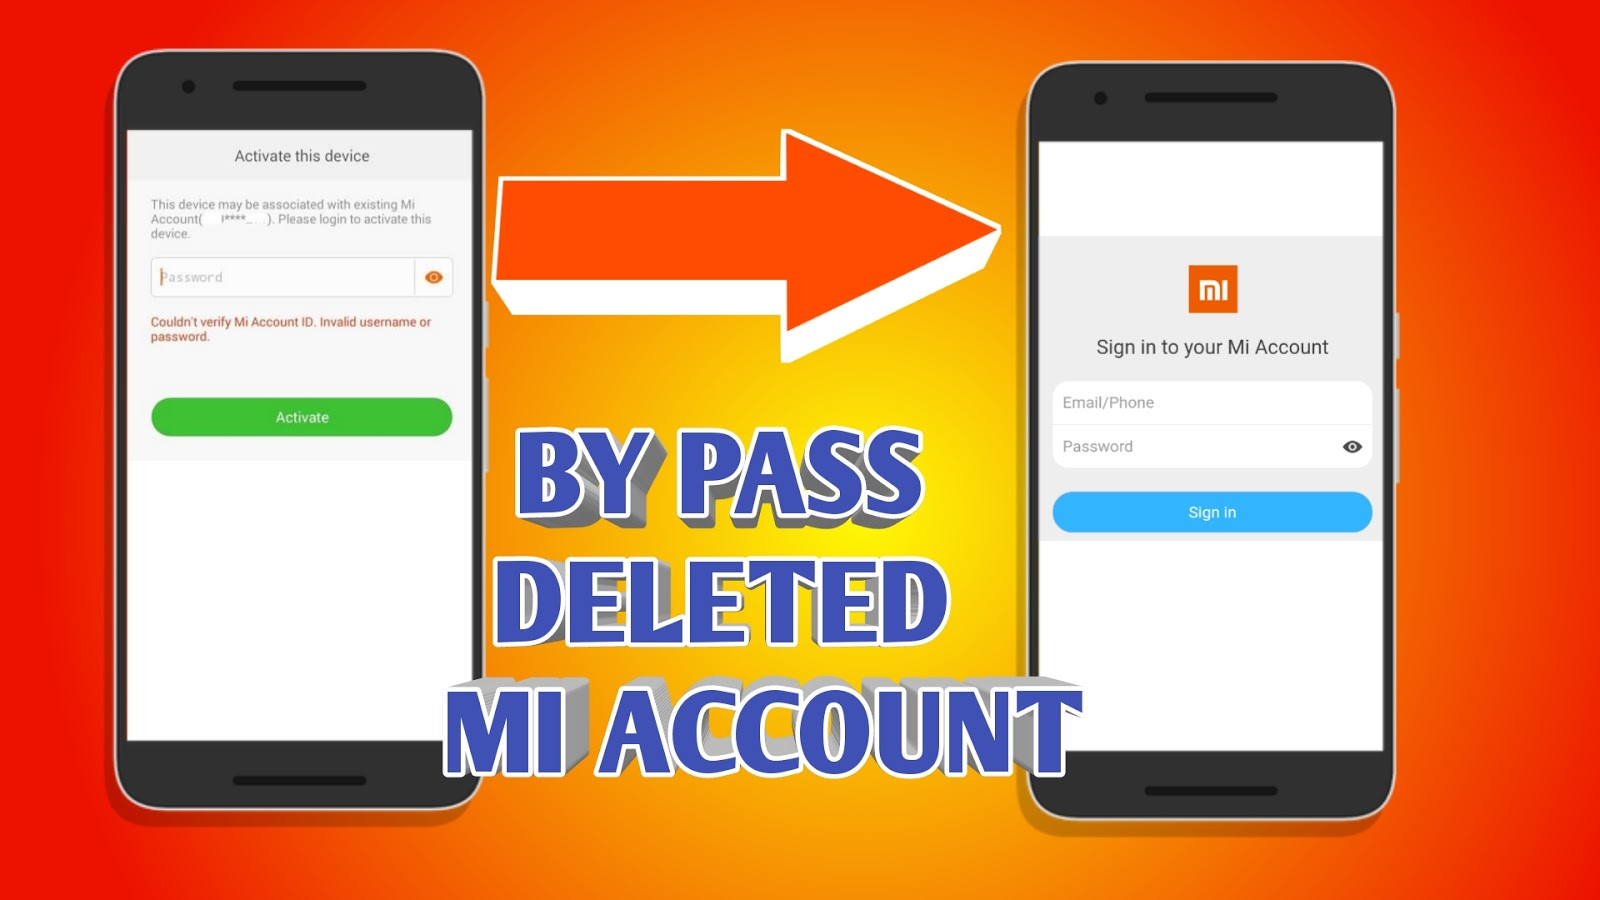 HOW TO BY PASS DELETED MI ACCOUNT IN XIAOMI DEVICES | TWRP